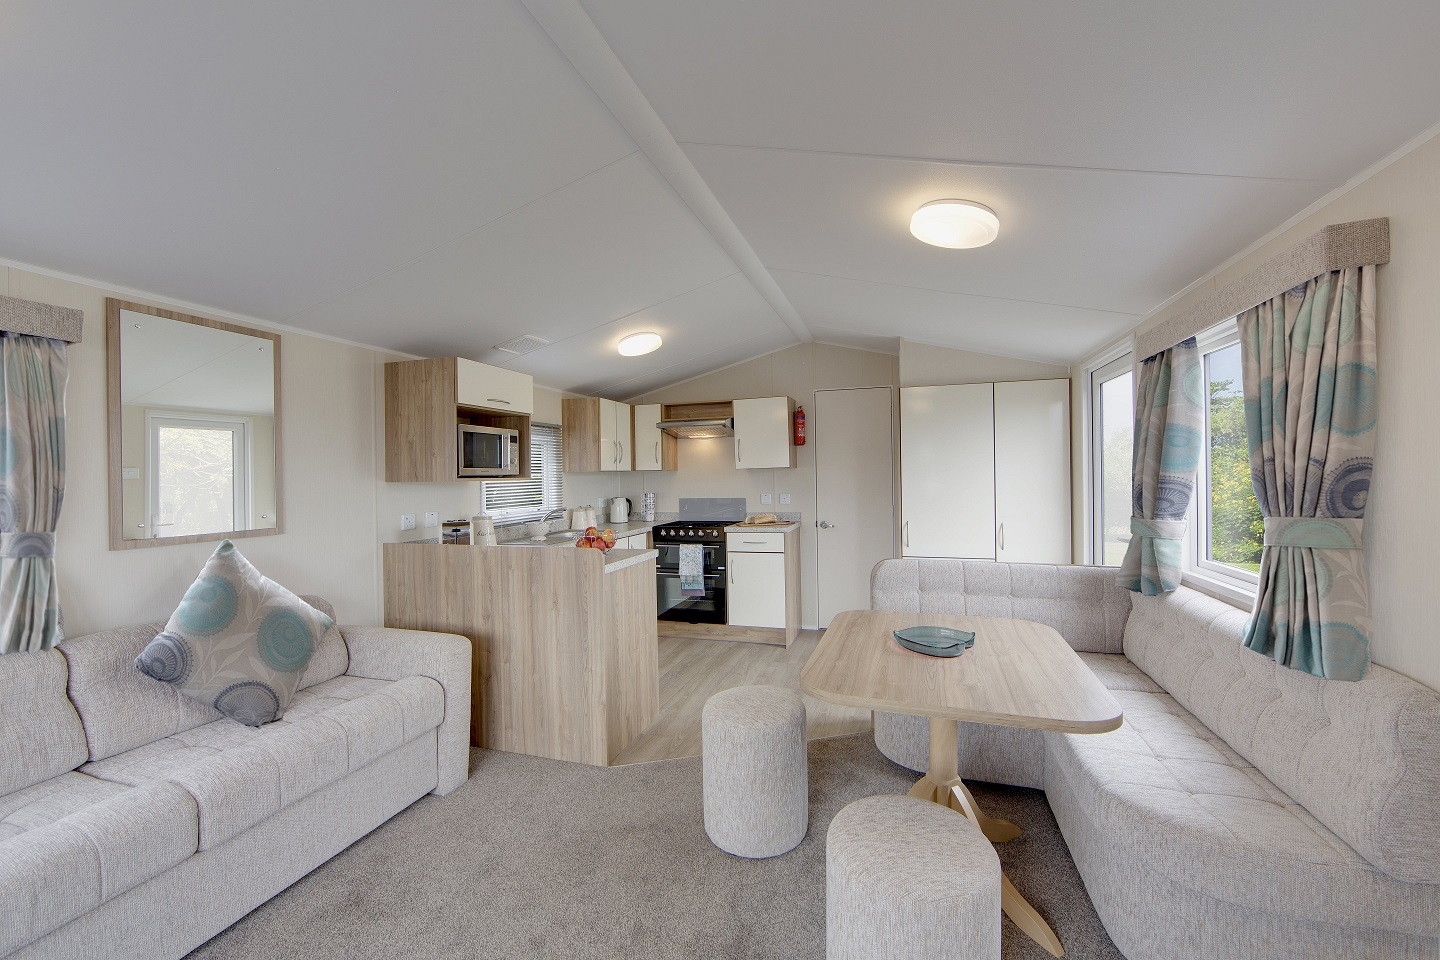 Willerby Rio Gold: New Static Caravans and Holiday Homes for Sale, Available at Factory Large Image 2